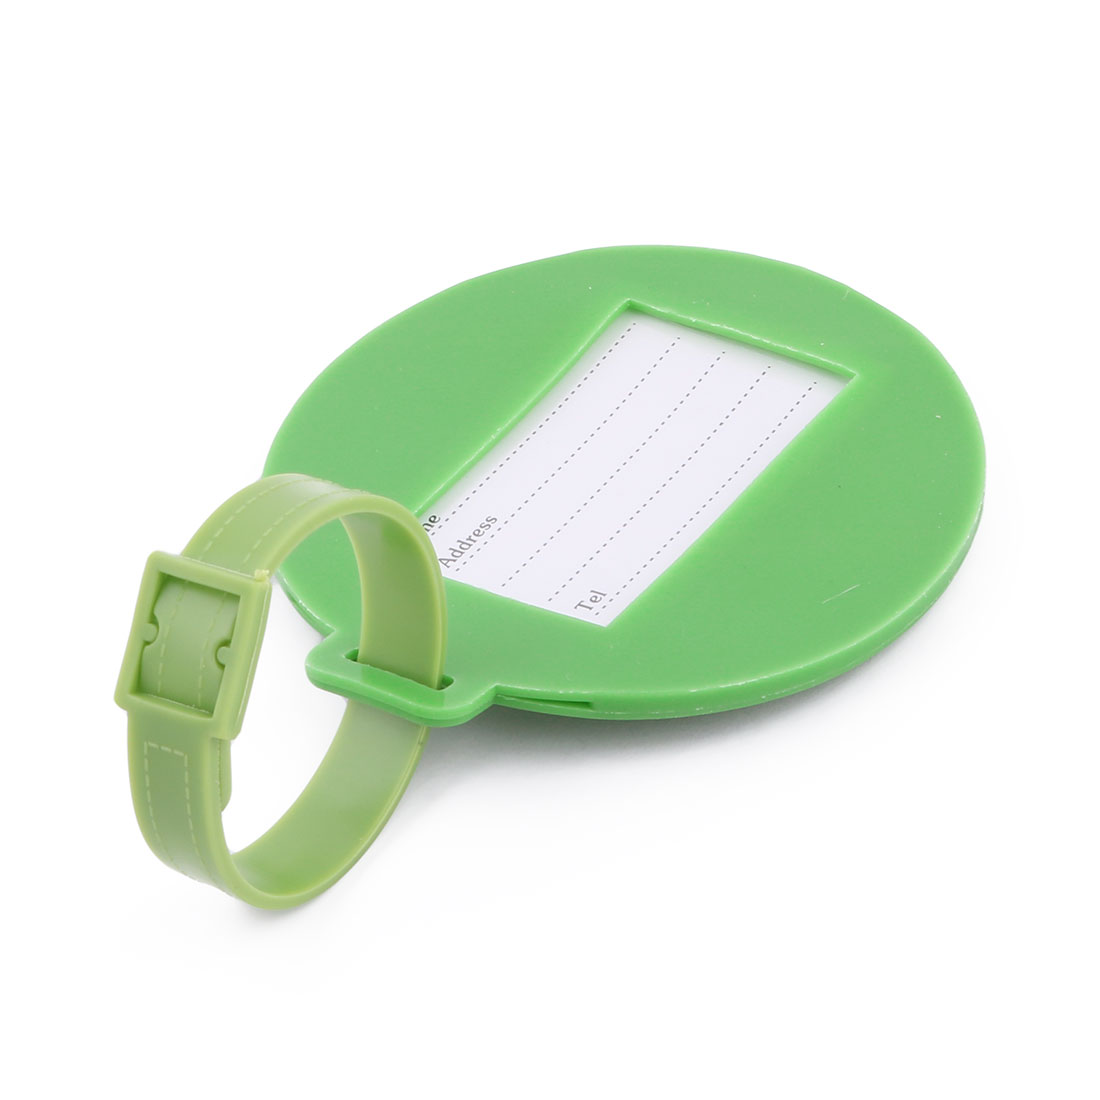 Silicone Round Shape Airplane Travel Suitcase Label Luggage Tag Name Address Card Holder Green